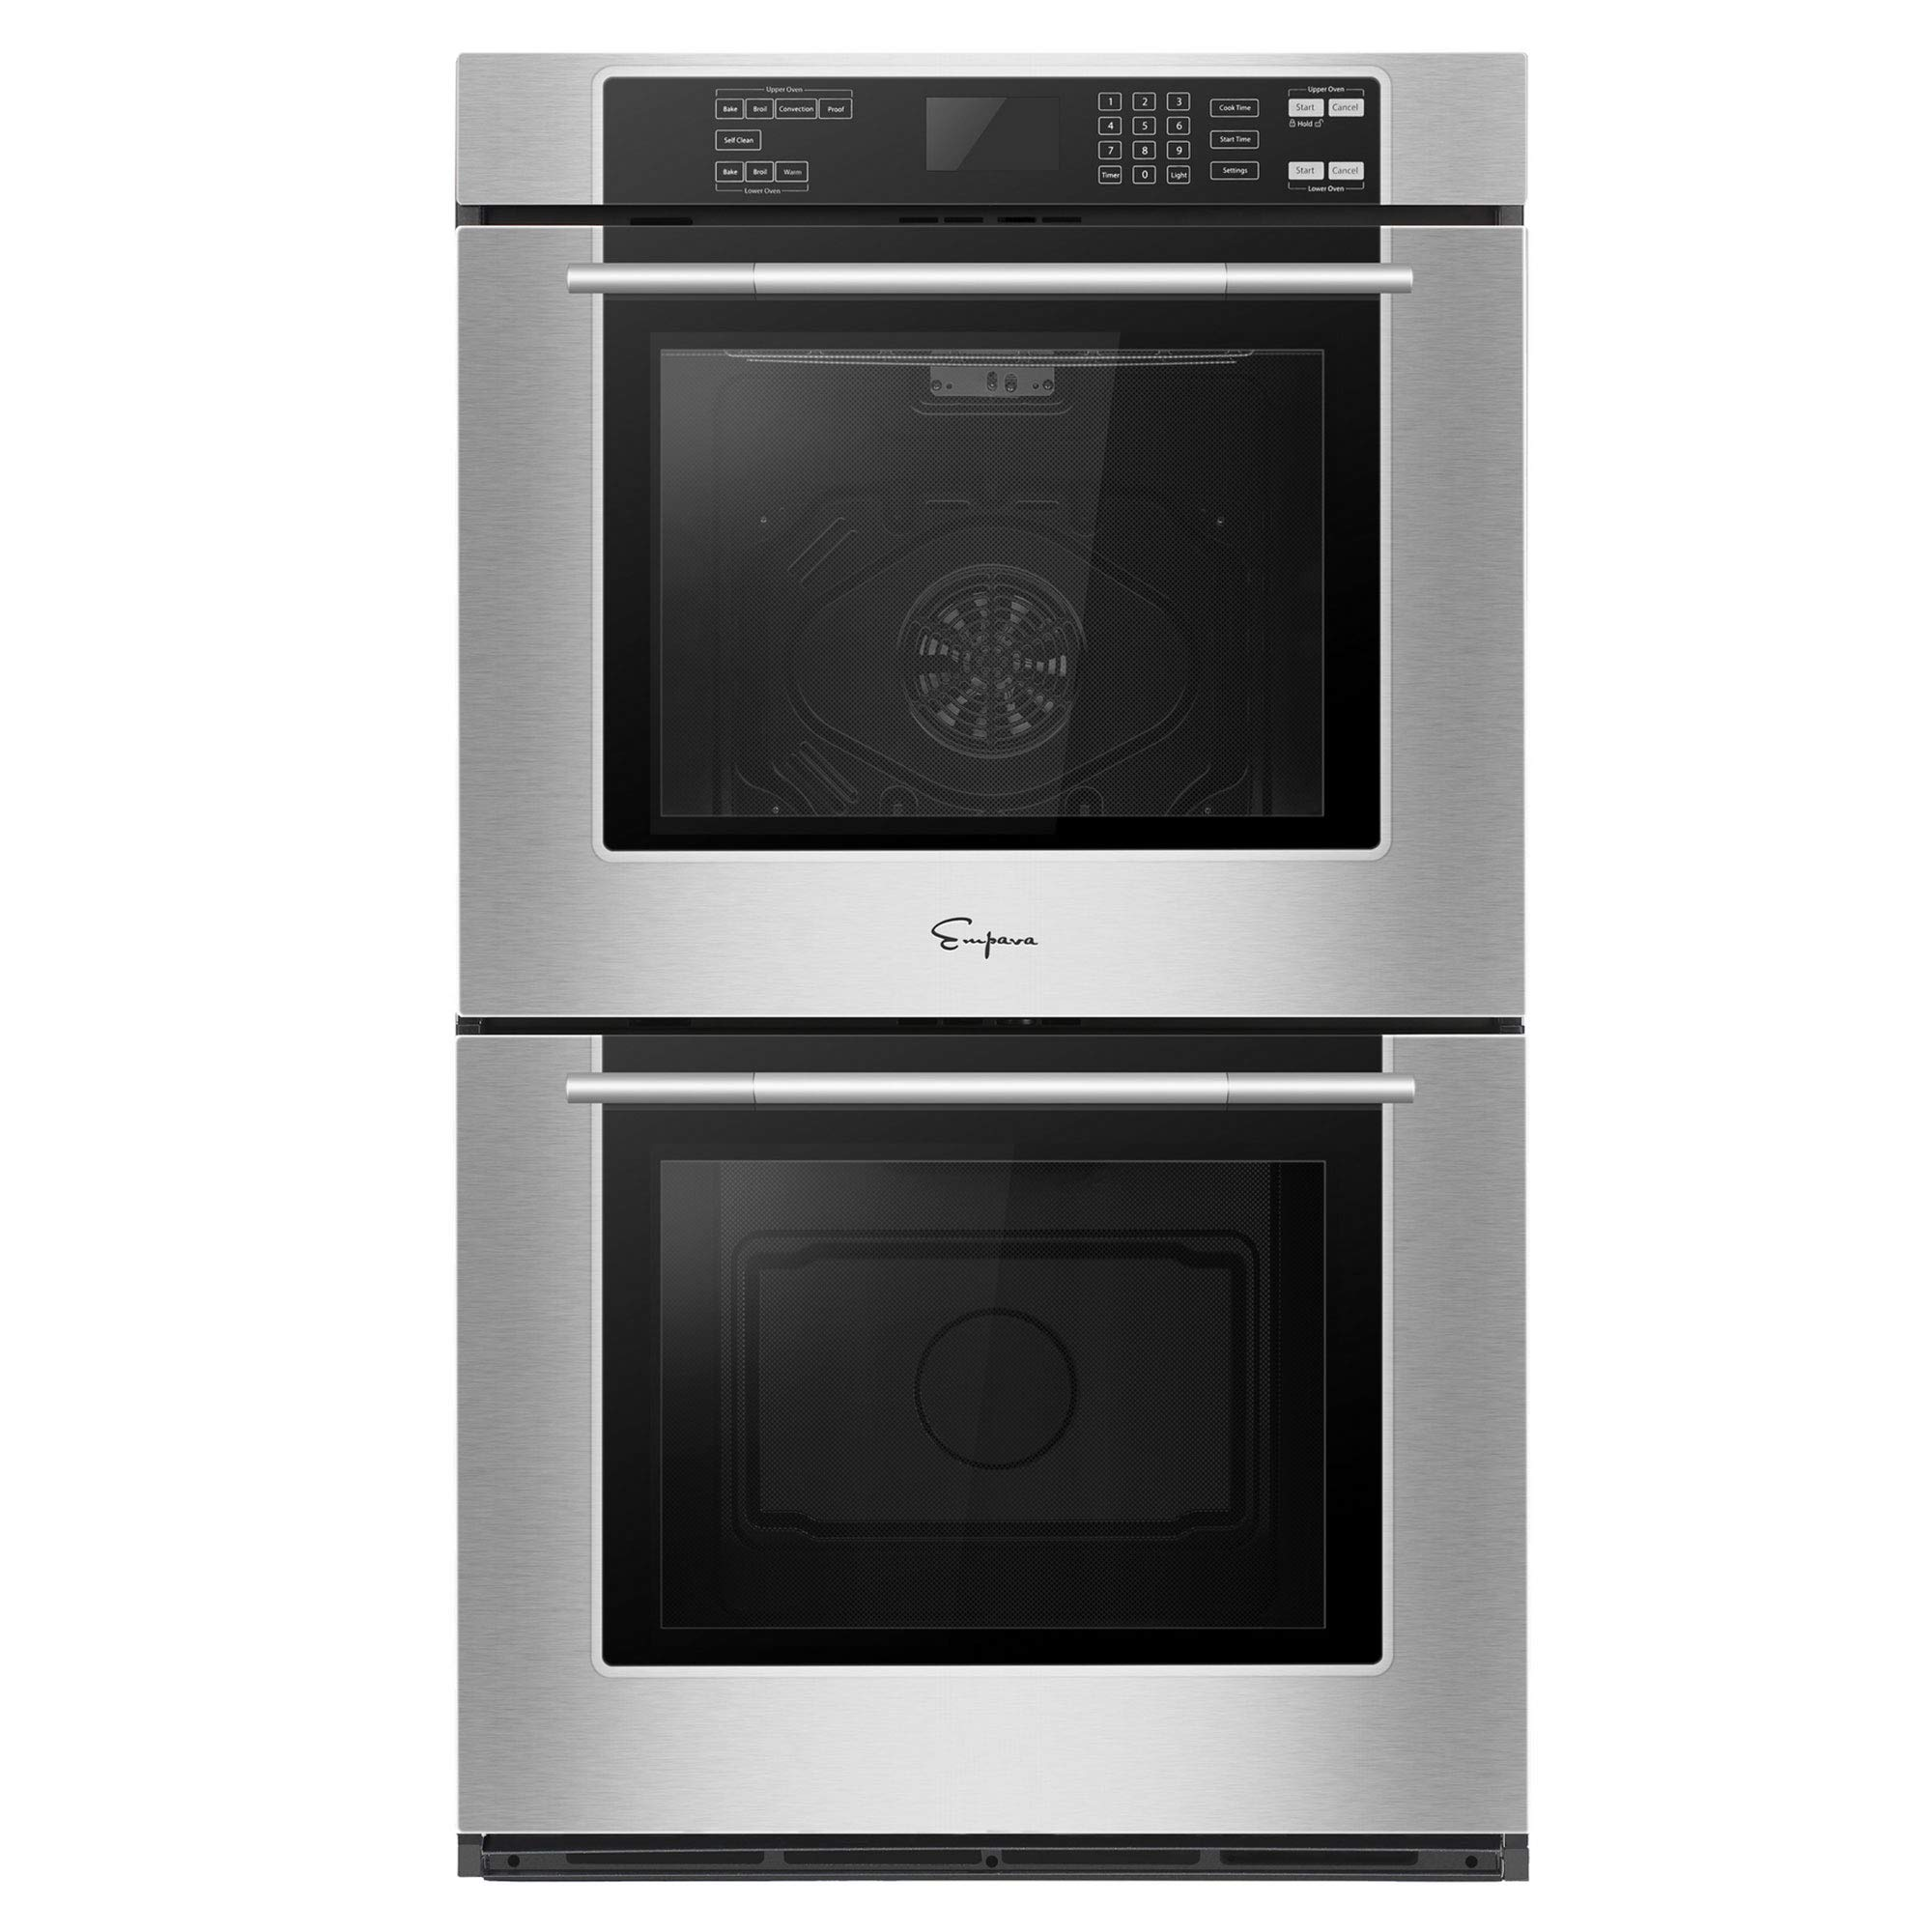 Empava 30 in 10 cu. ft. Total Capacity Electric Double Wall 4 Oven Racks Self-cleaning Convection Fan Touch Control in Stainless Steel Black